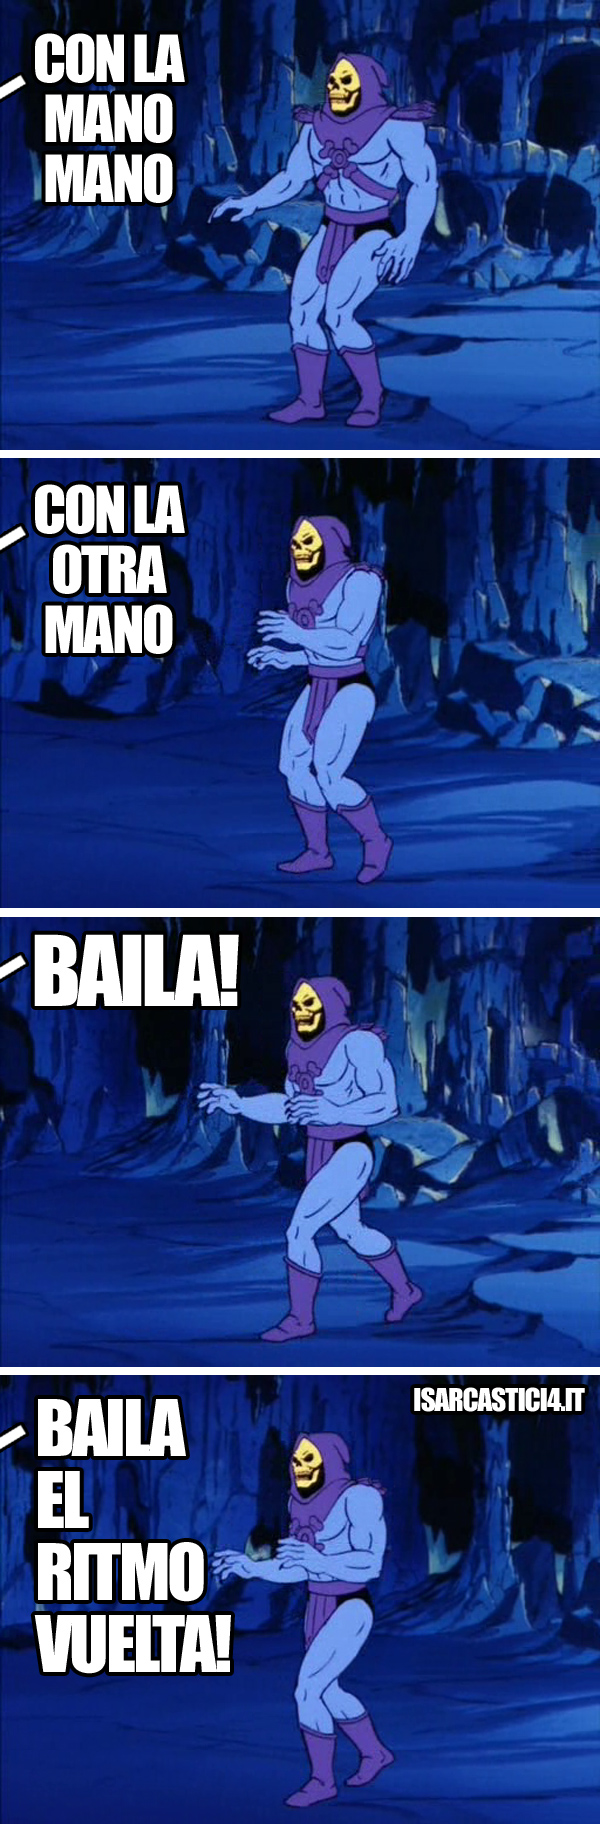 MOTU, Masters Of The Universe meme ita - Ritmo